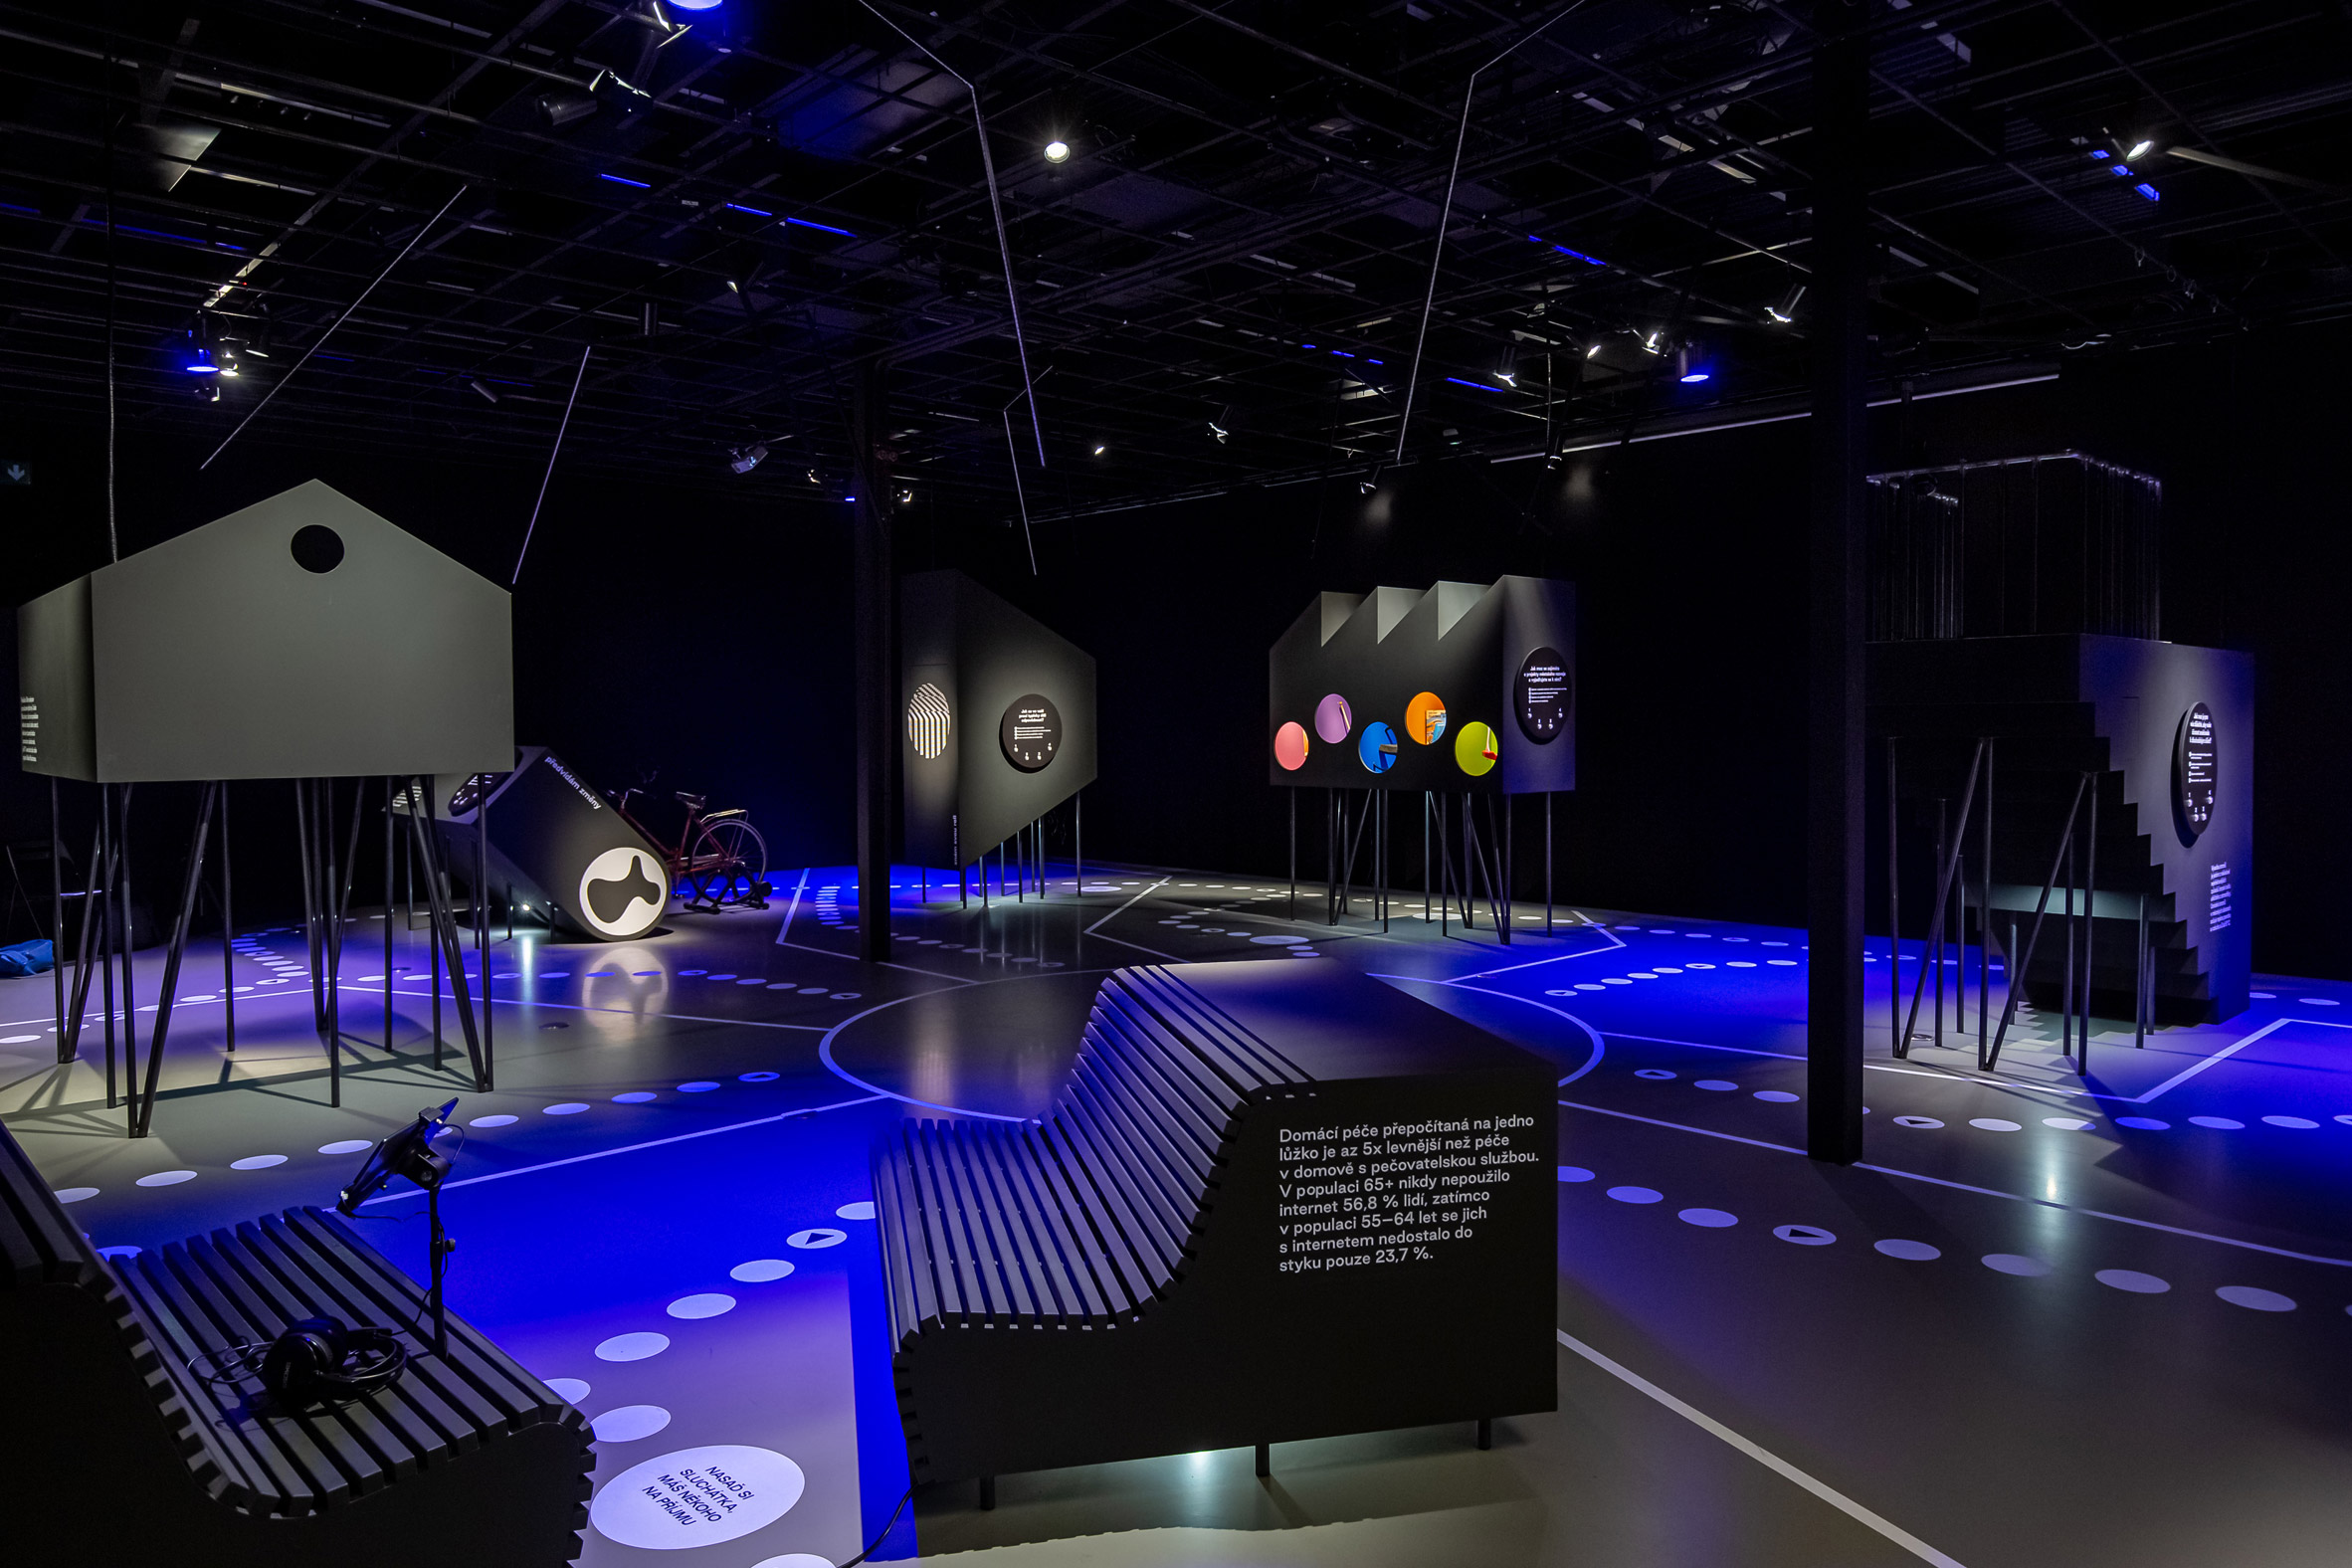 Overview of Urbania exhibition designed by RSAA for IPR Praha in Prague, Czech Republic